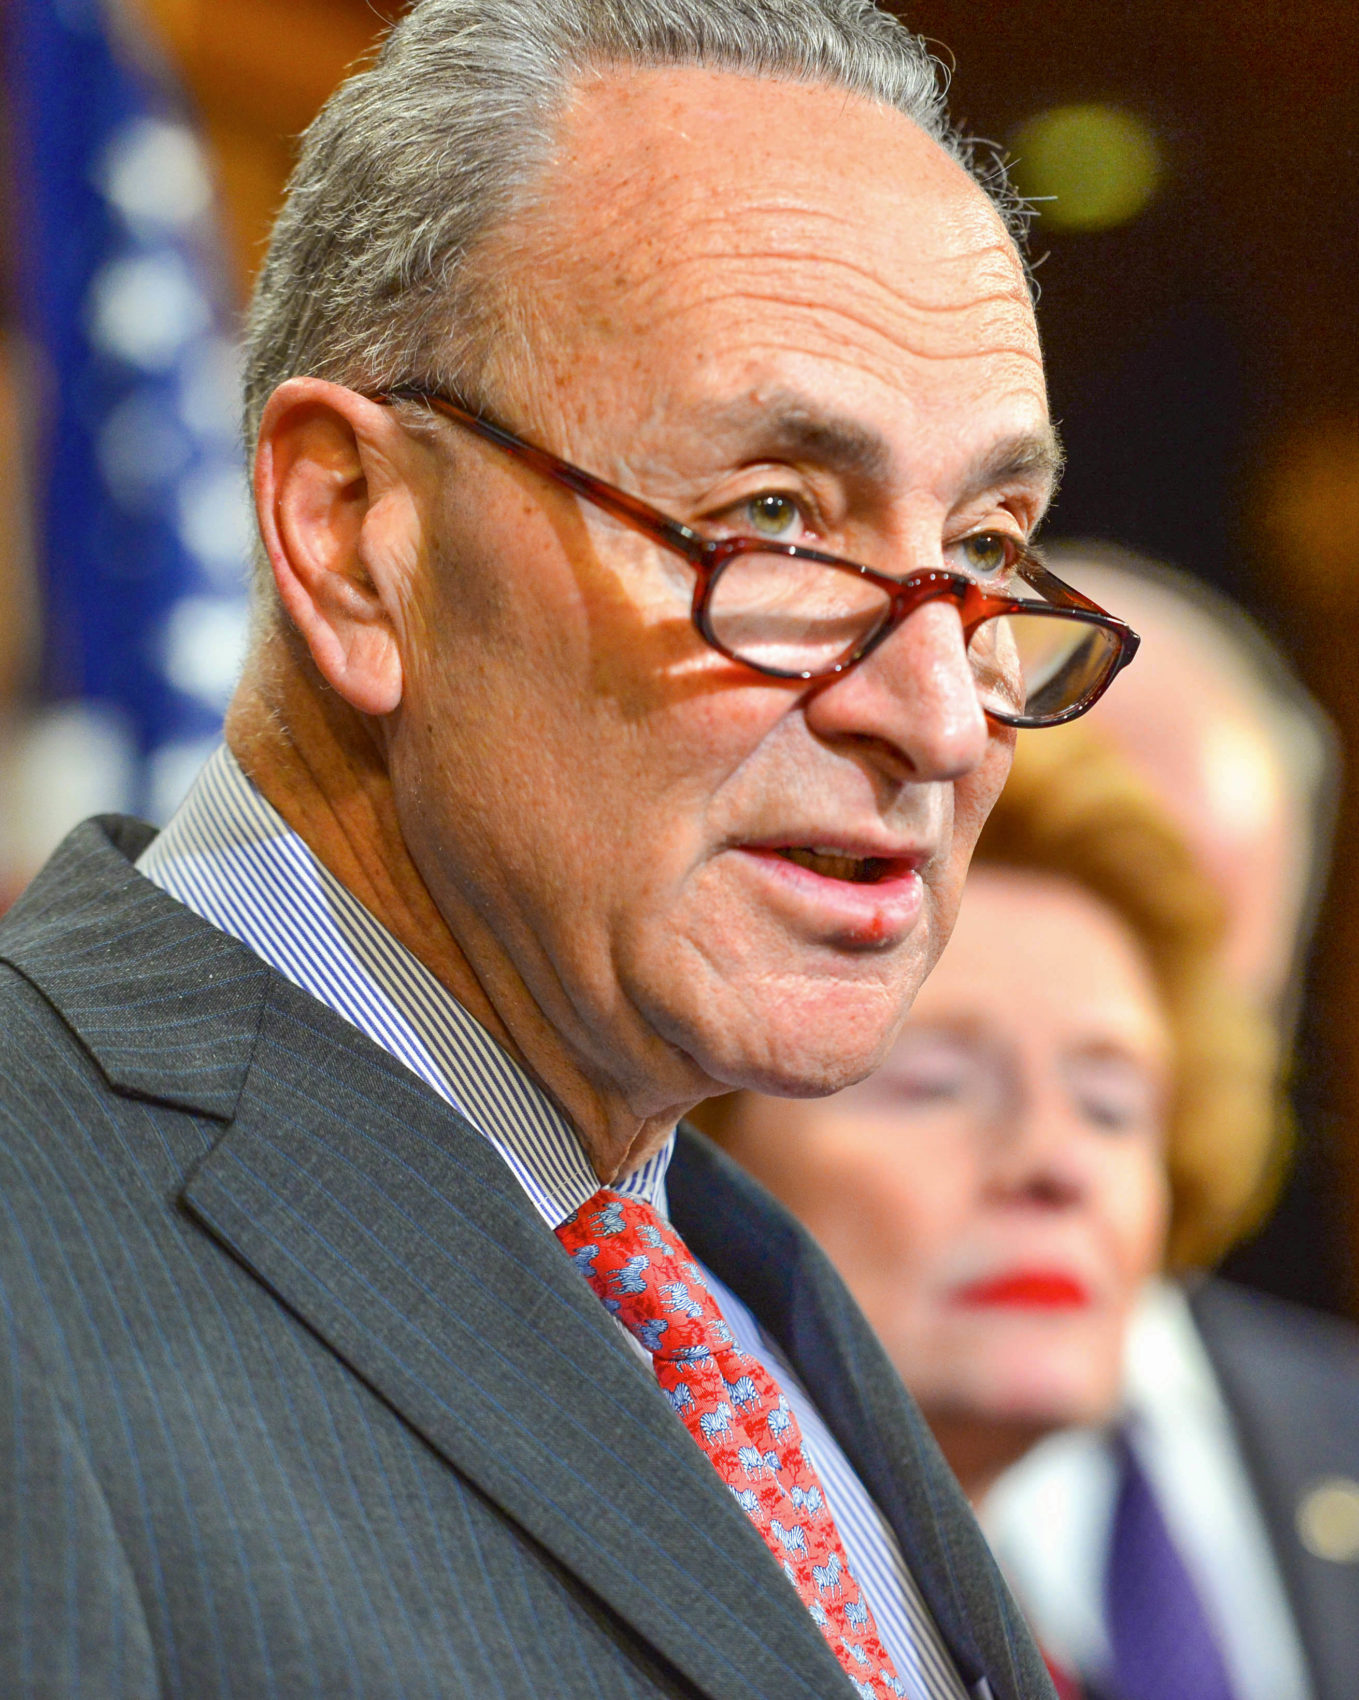 Chuck Schumer: A Democratic Senate Will Make Health Care Affordable and Combat Climate Change